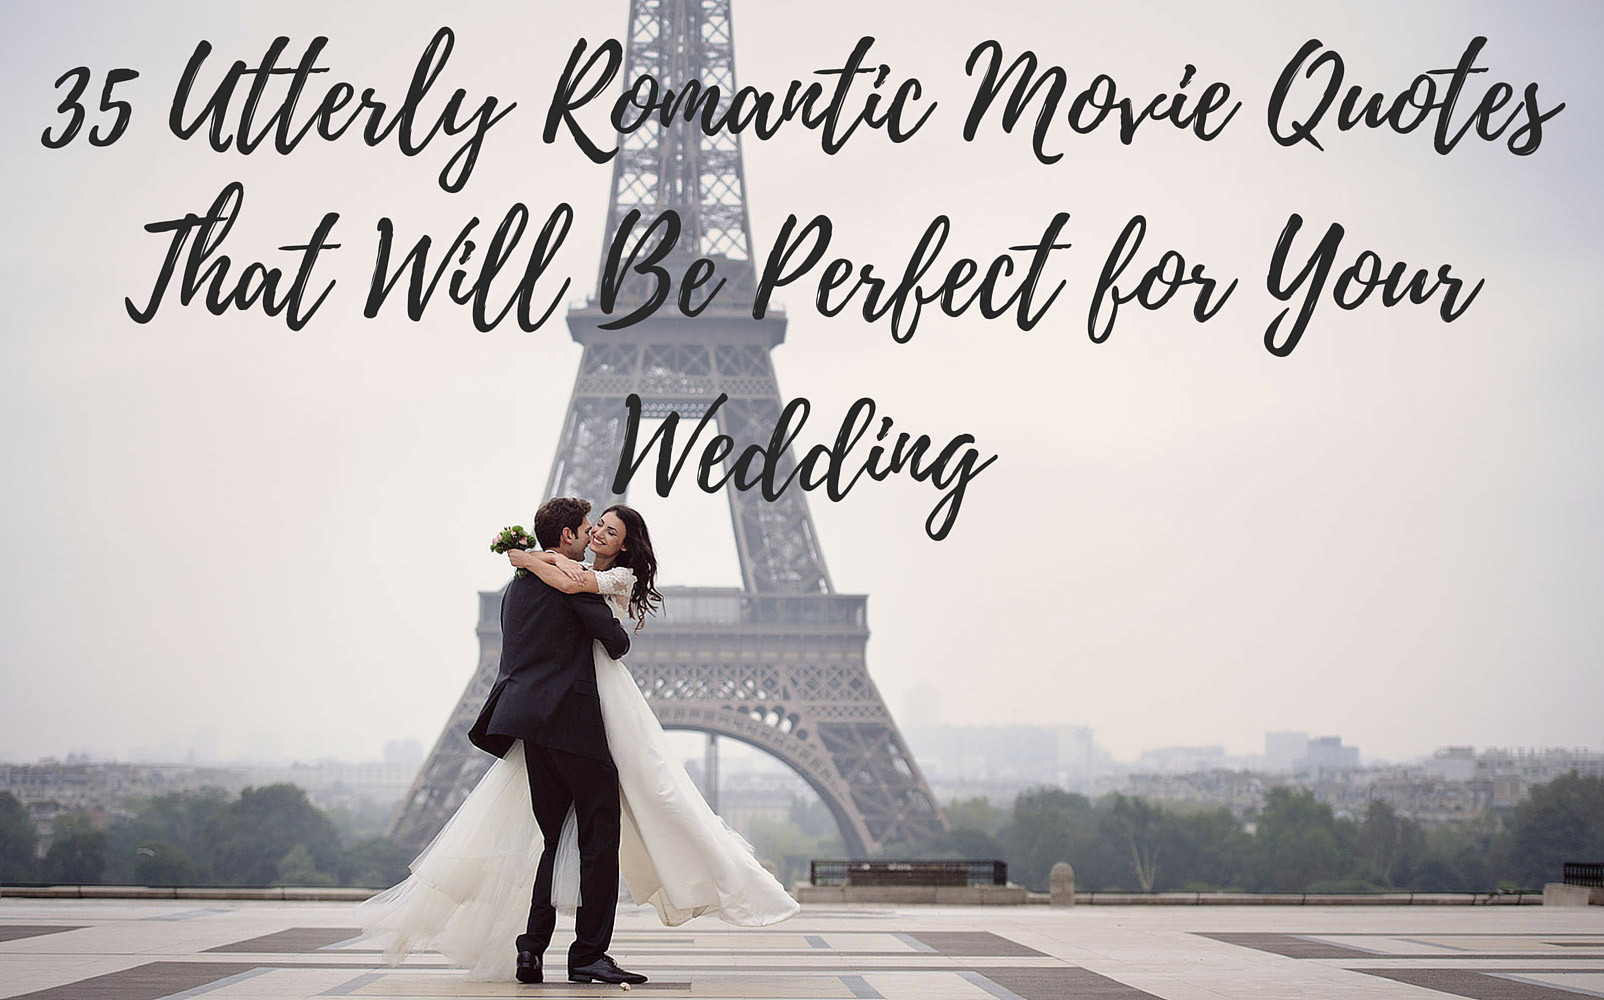 Romantic Marriage Quote  Utterly Romantic Quotes from Movies